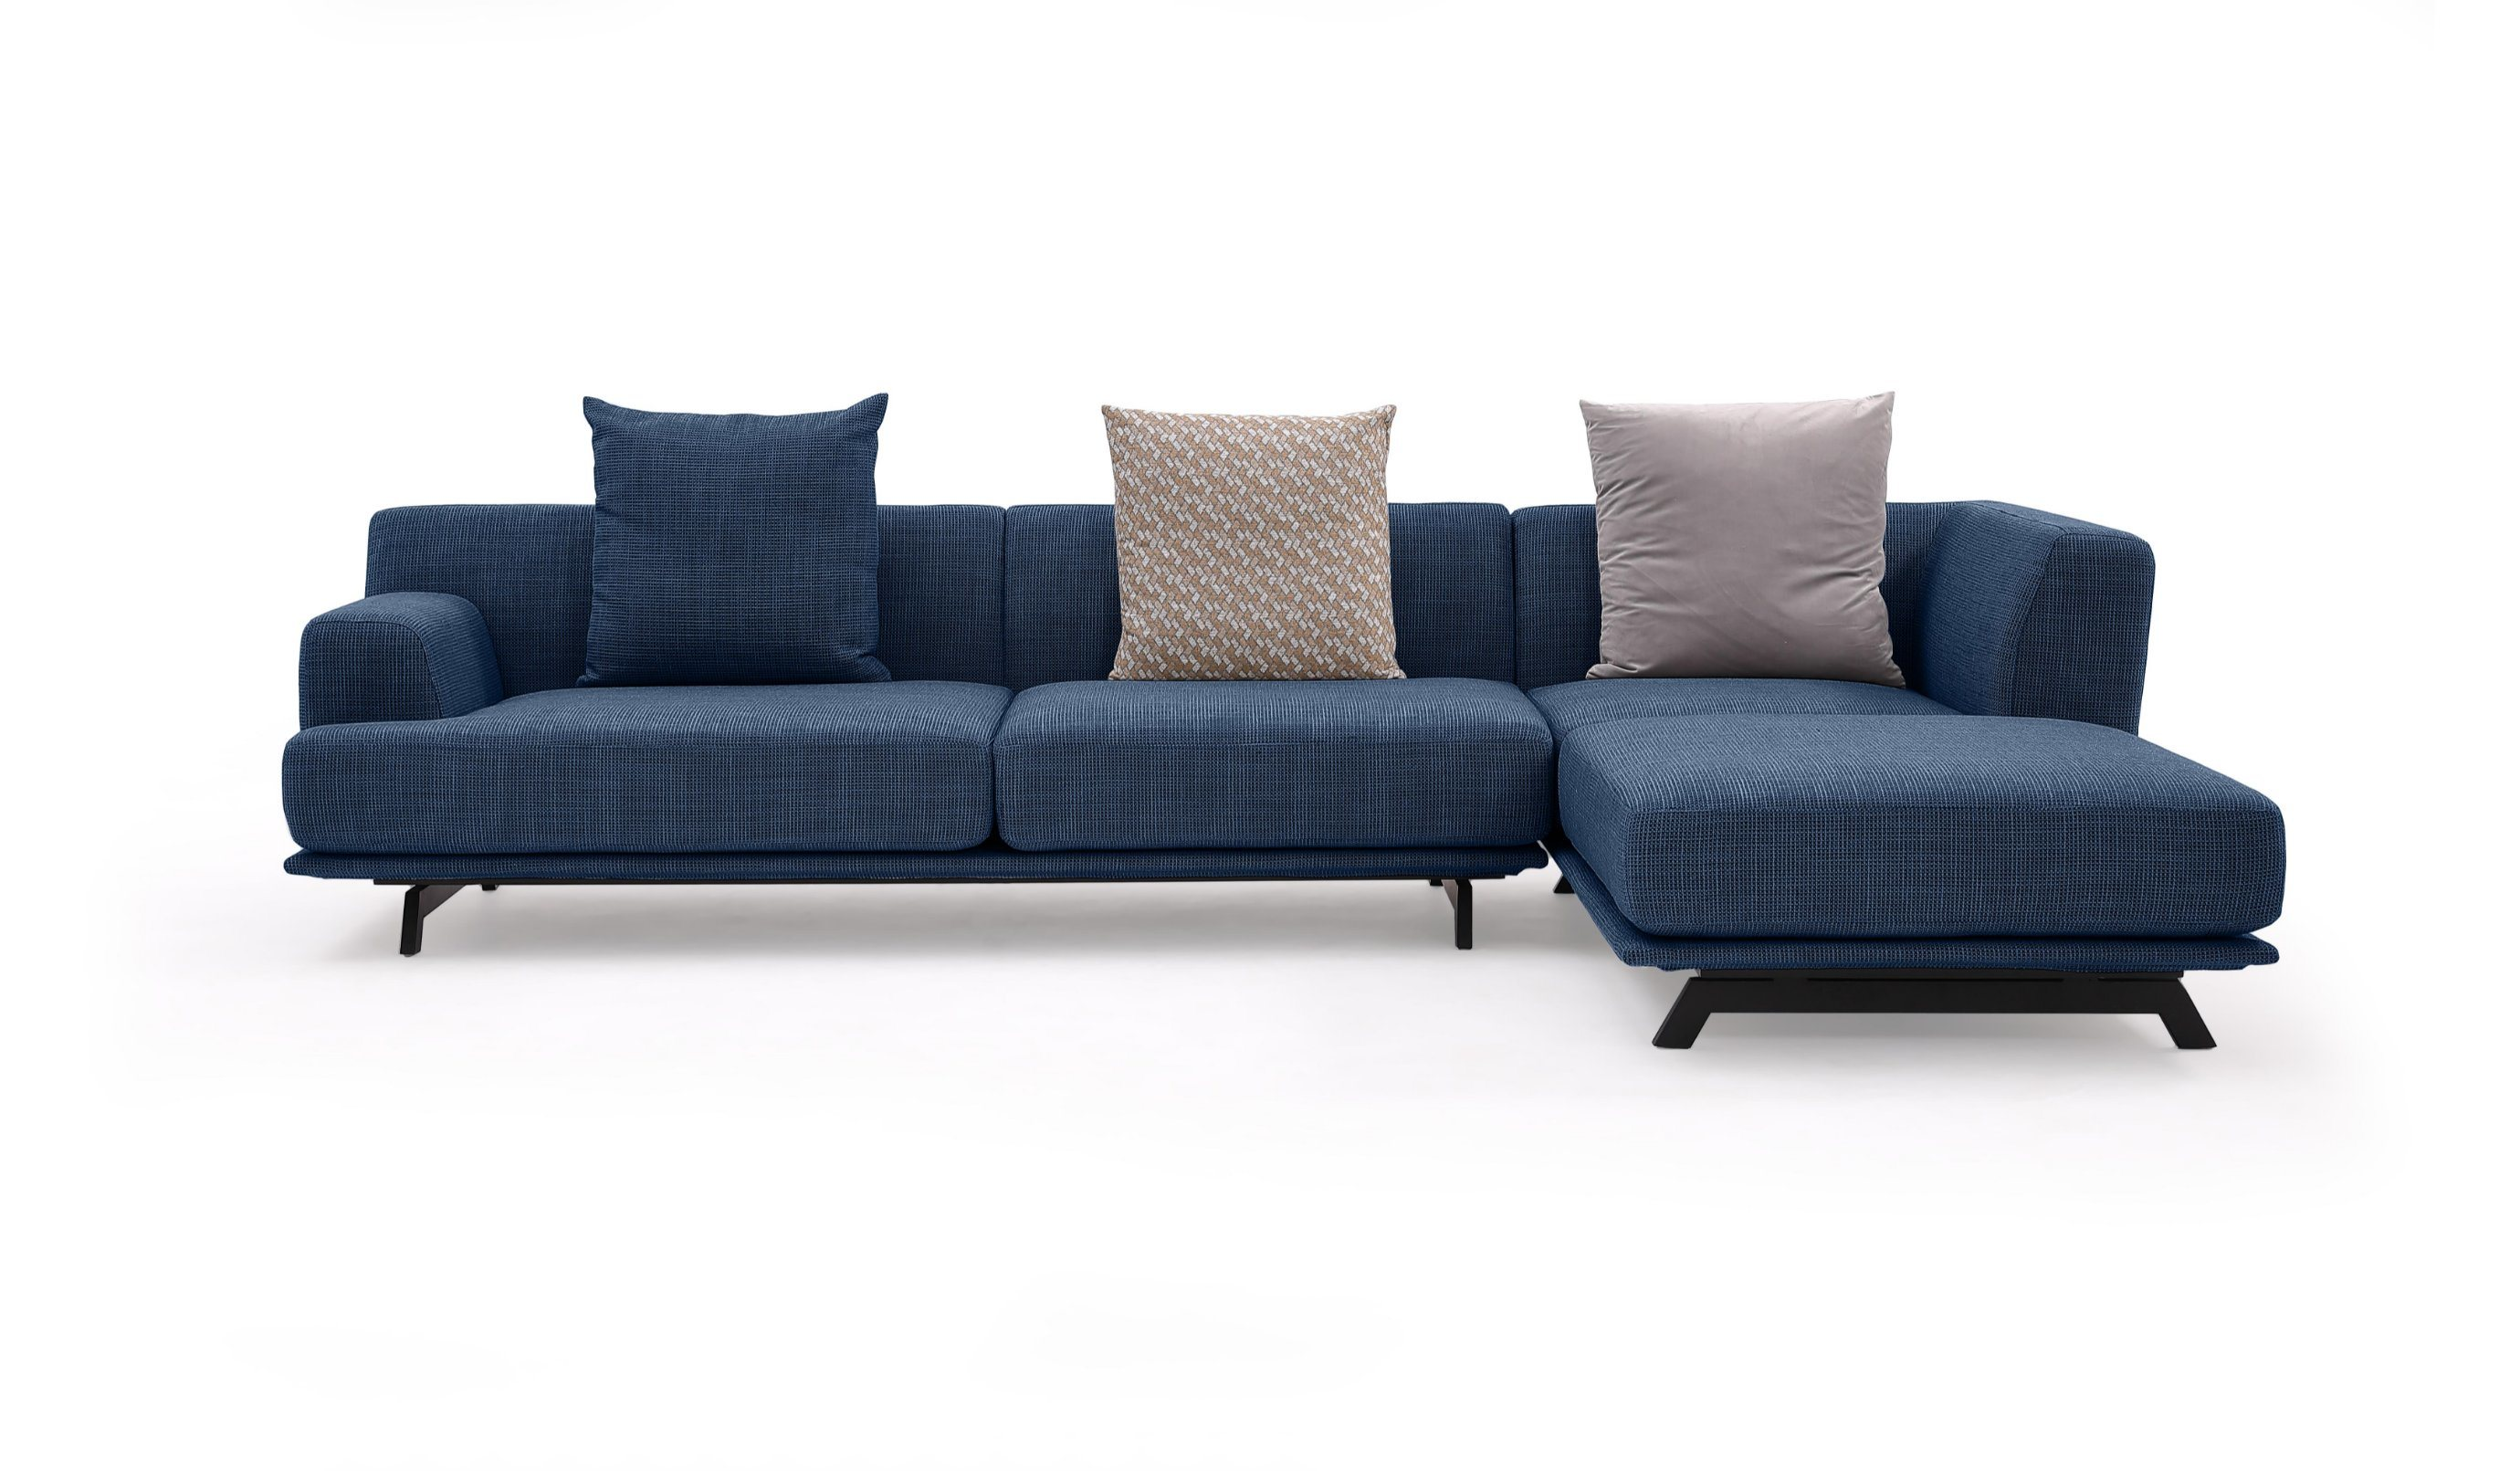 Foshan Modern Italian Luxury Hot Sale Blue Fabric Sofa Homesectional Couch Sleeper Sofa Couches For Sale Chair Bed Sofa Living Room Furniture Sets China Home Sofas Couch Home Furniture Couch